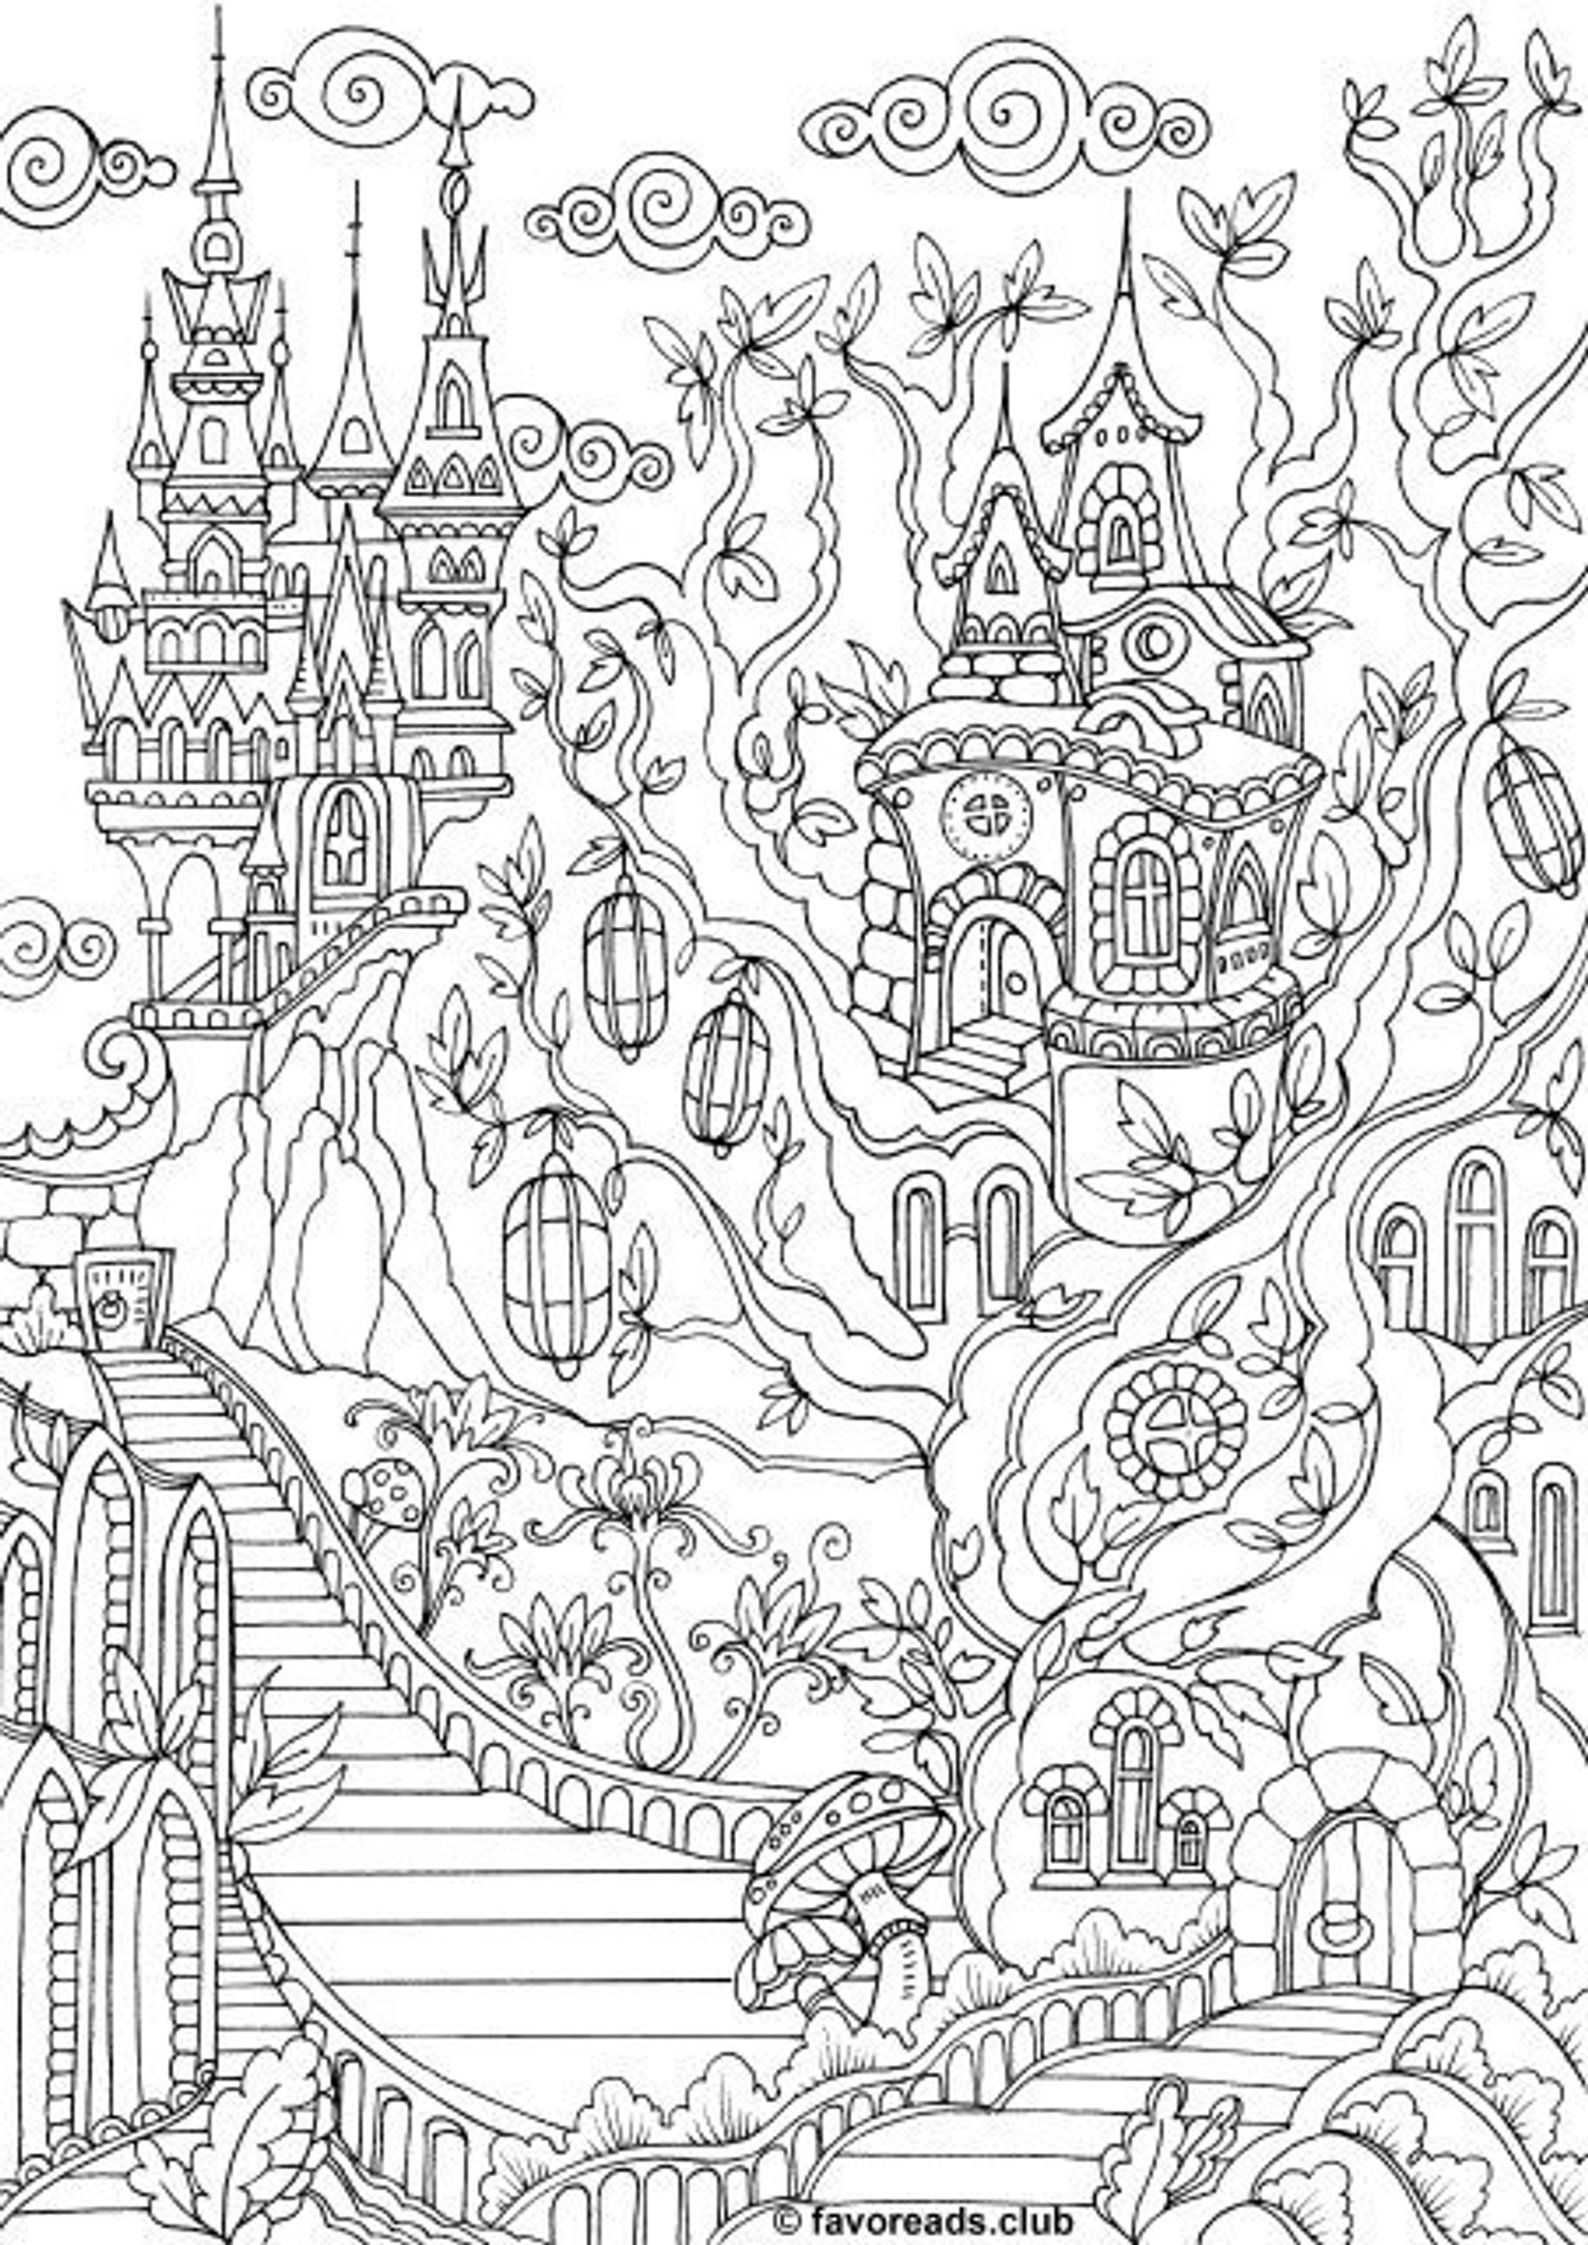 Fantasy City Printable Adult Coloring Page from